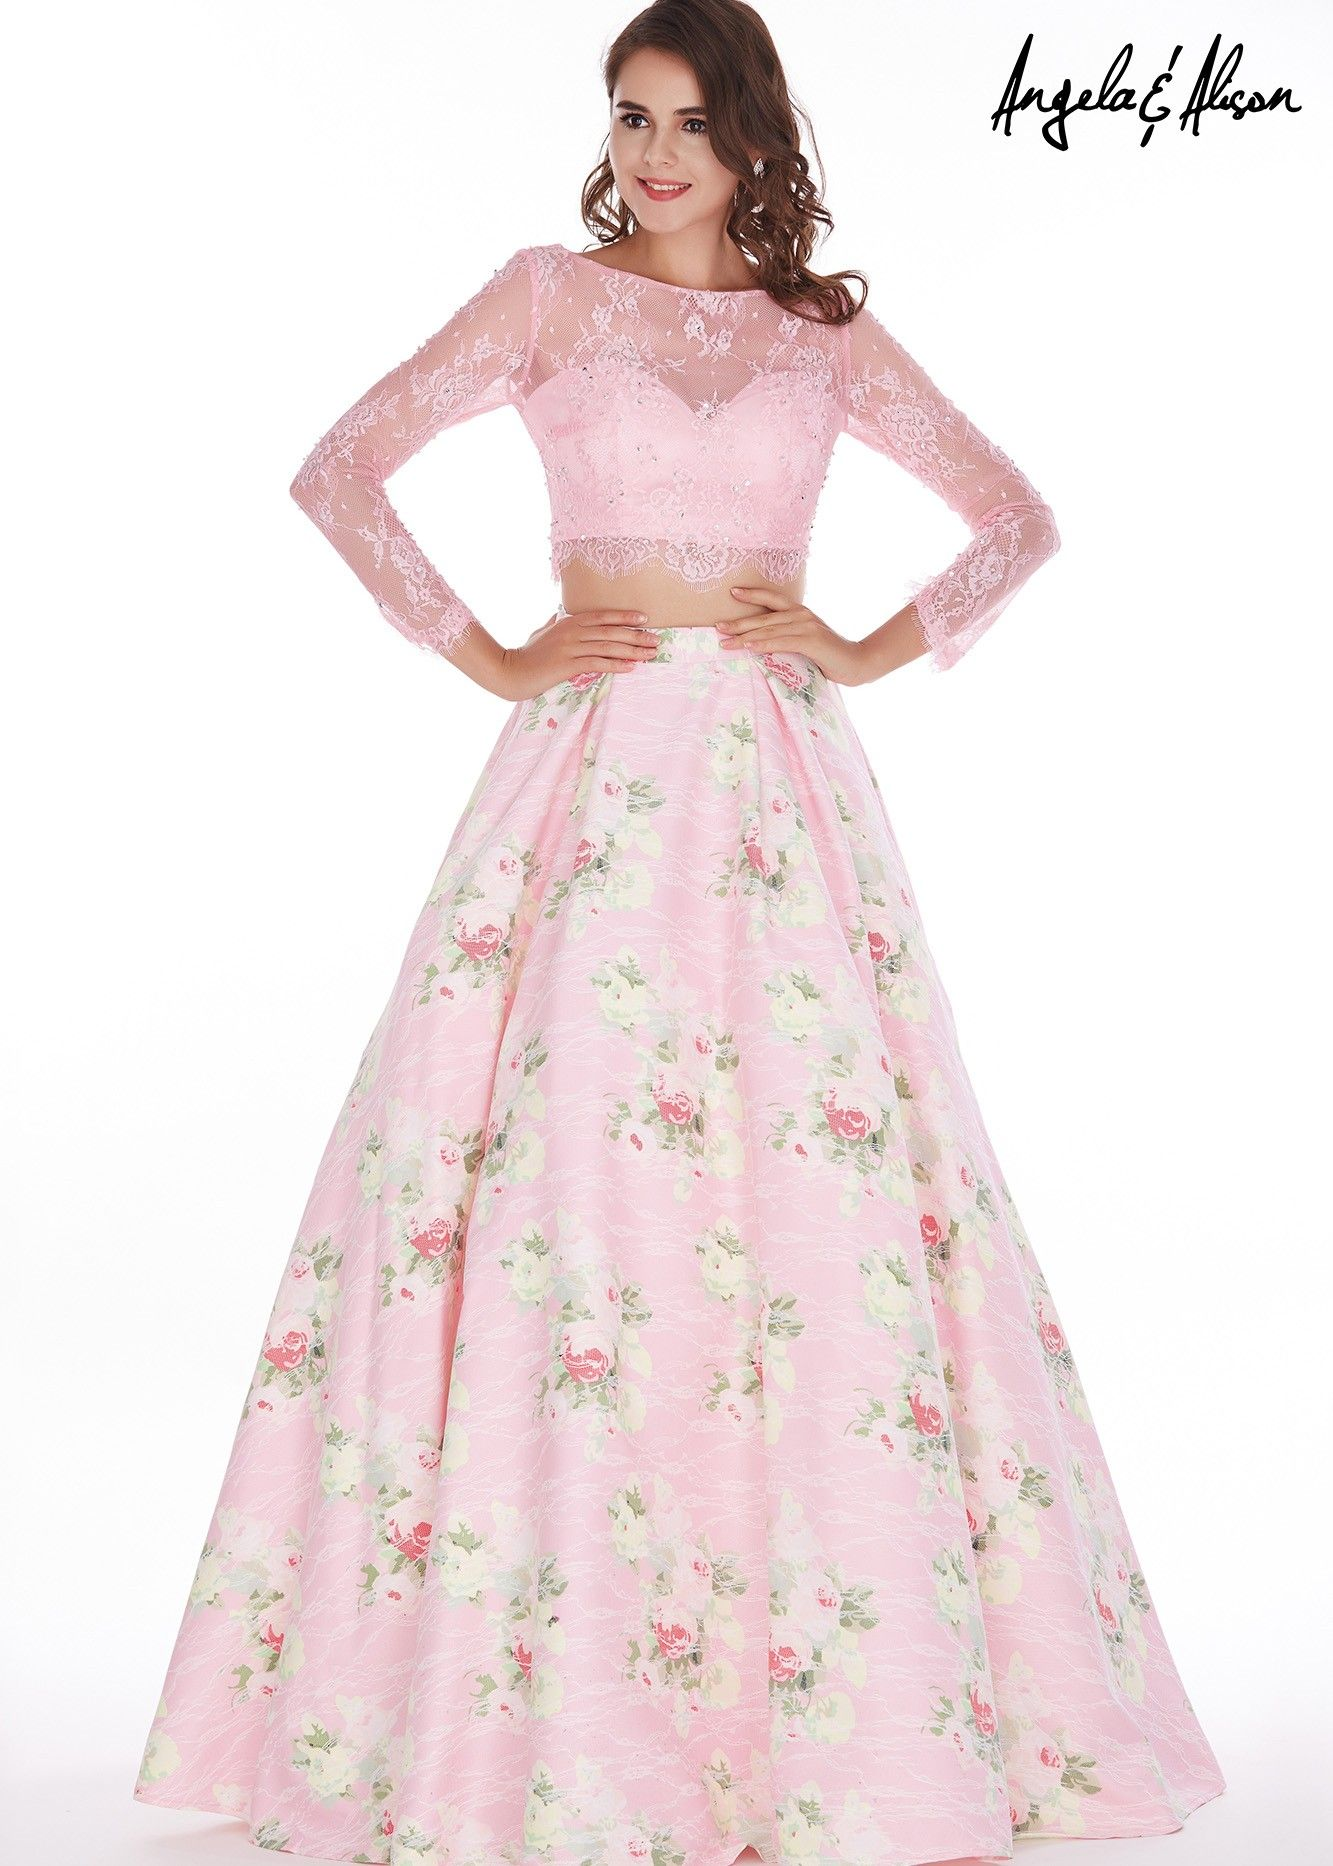 Angela u alison light pinkfloral two piece prom dress with